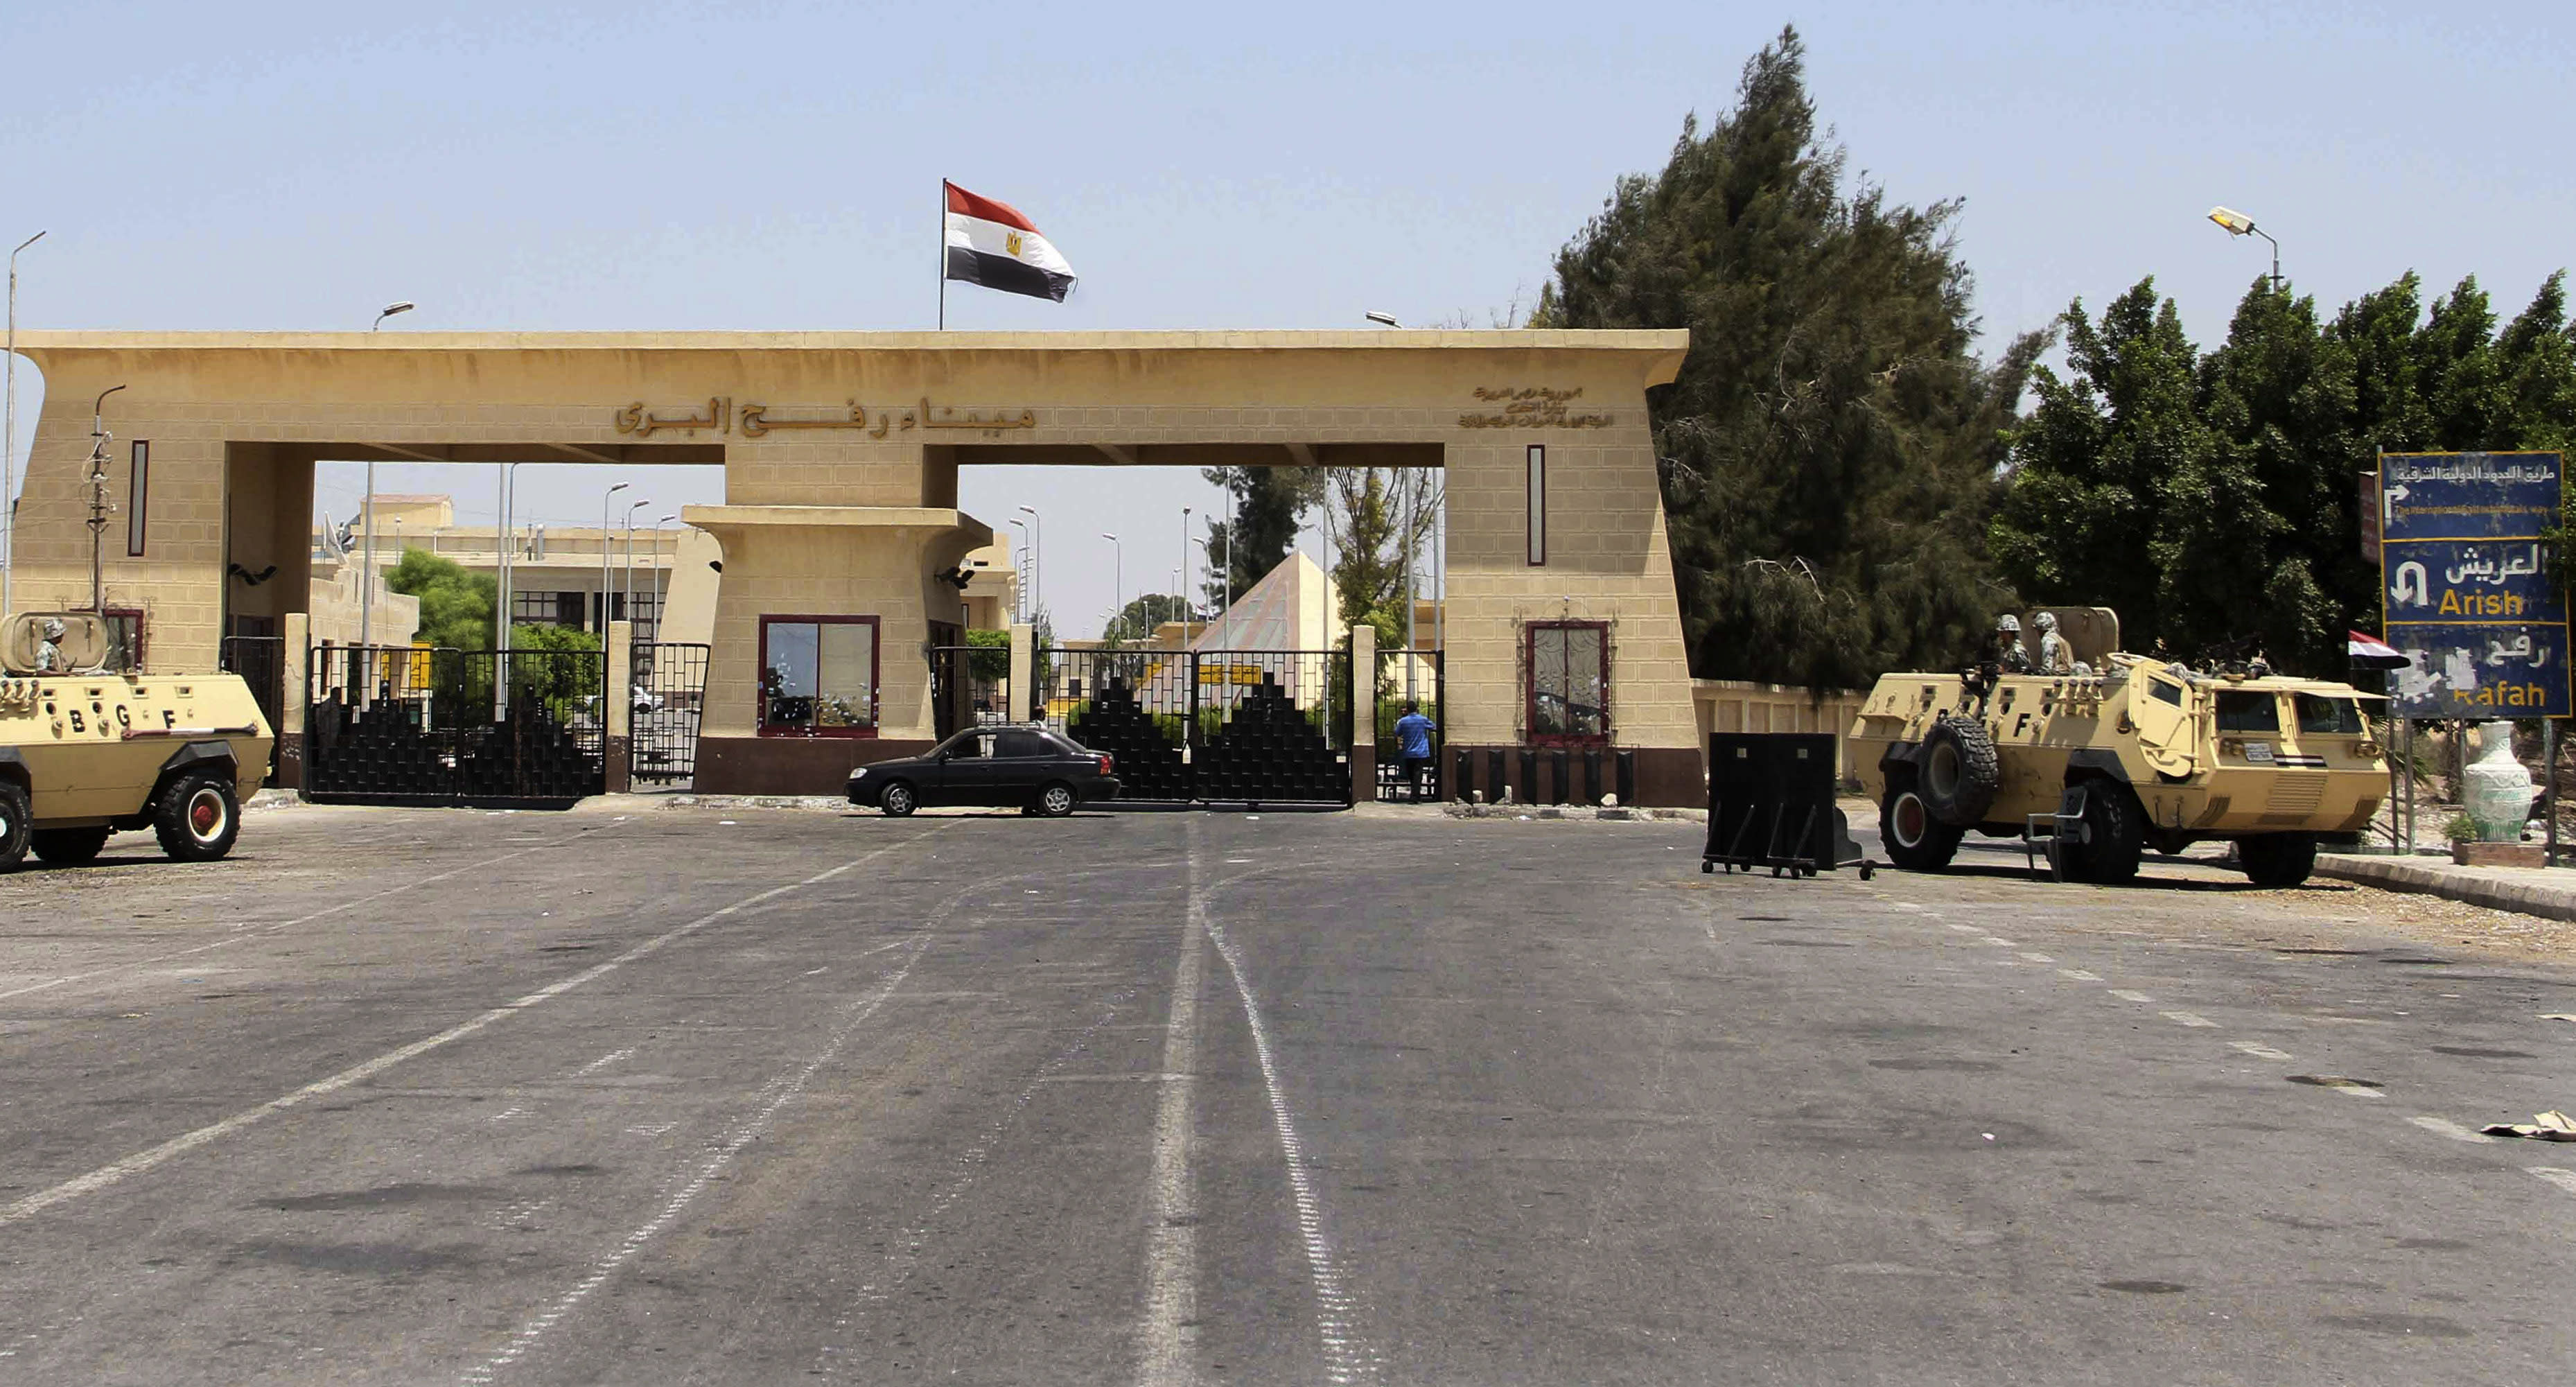 FILE - In this Monday Aug. 6, 2012 file photograph, the Rafah border terminal between Egypt and Gaza, and the only gateway for Gaza's people, is closed and guarded by Egyptian border guards in Rafah, Egypt. President Mohammed Morsi is using former jihadists to mediate with radical Islamists in Sinai, trying to ensure a halt in militant attacks in return for a stop in a military offensive in the lawless peninsula, participants in the talks say. (AP Photo/Ahmed Gomaa, File)